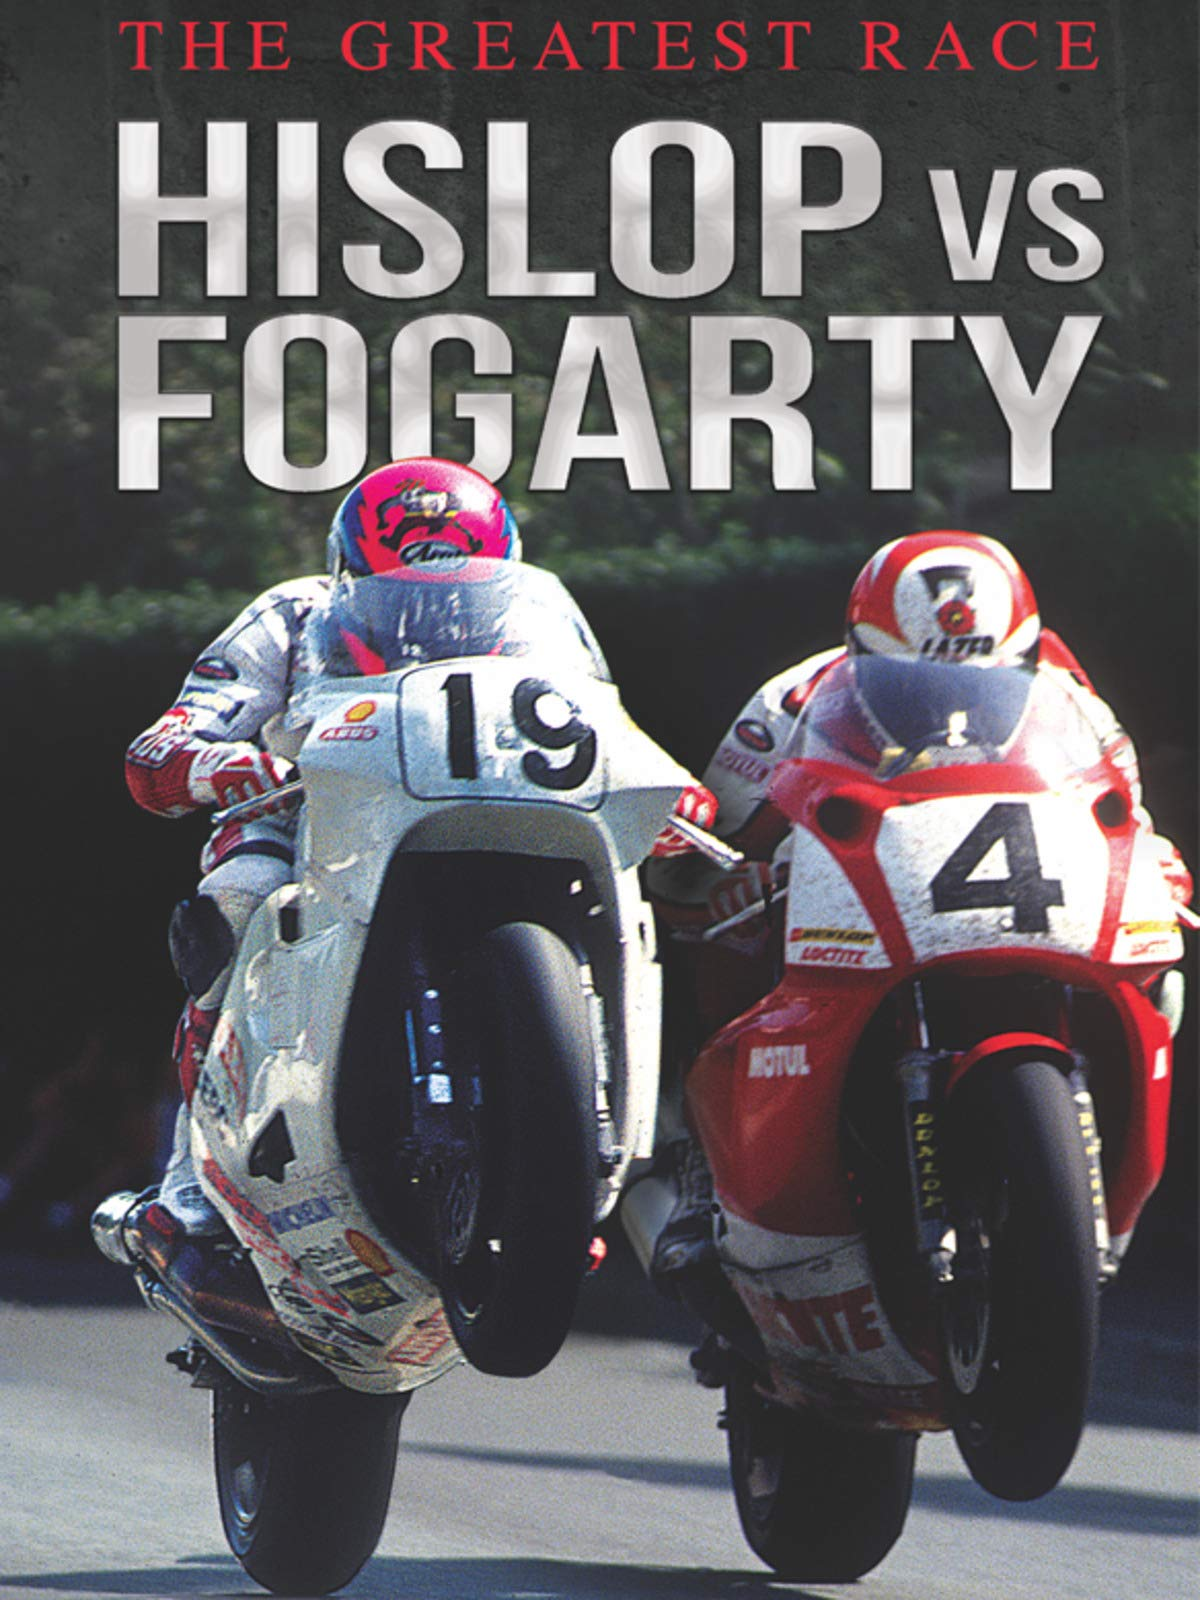 The Greatest Race - Hislop v Fogarty on Amazon Prime Video UK